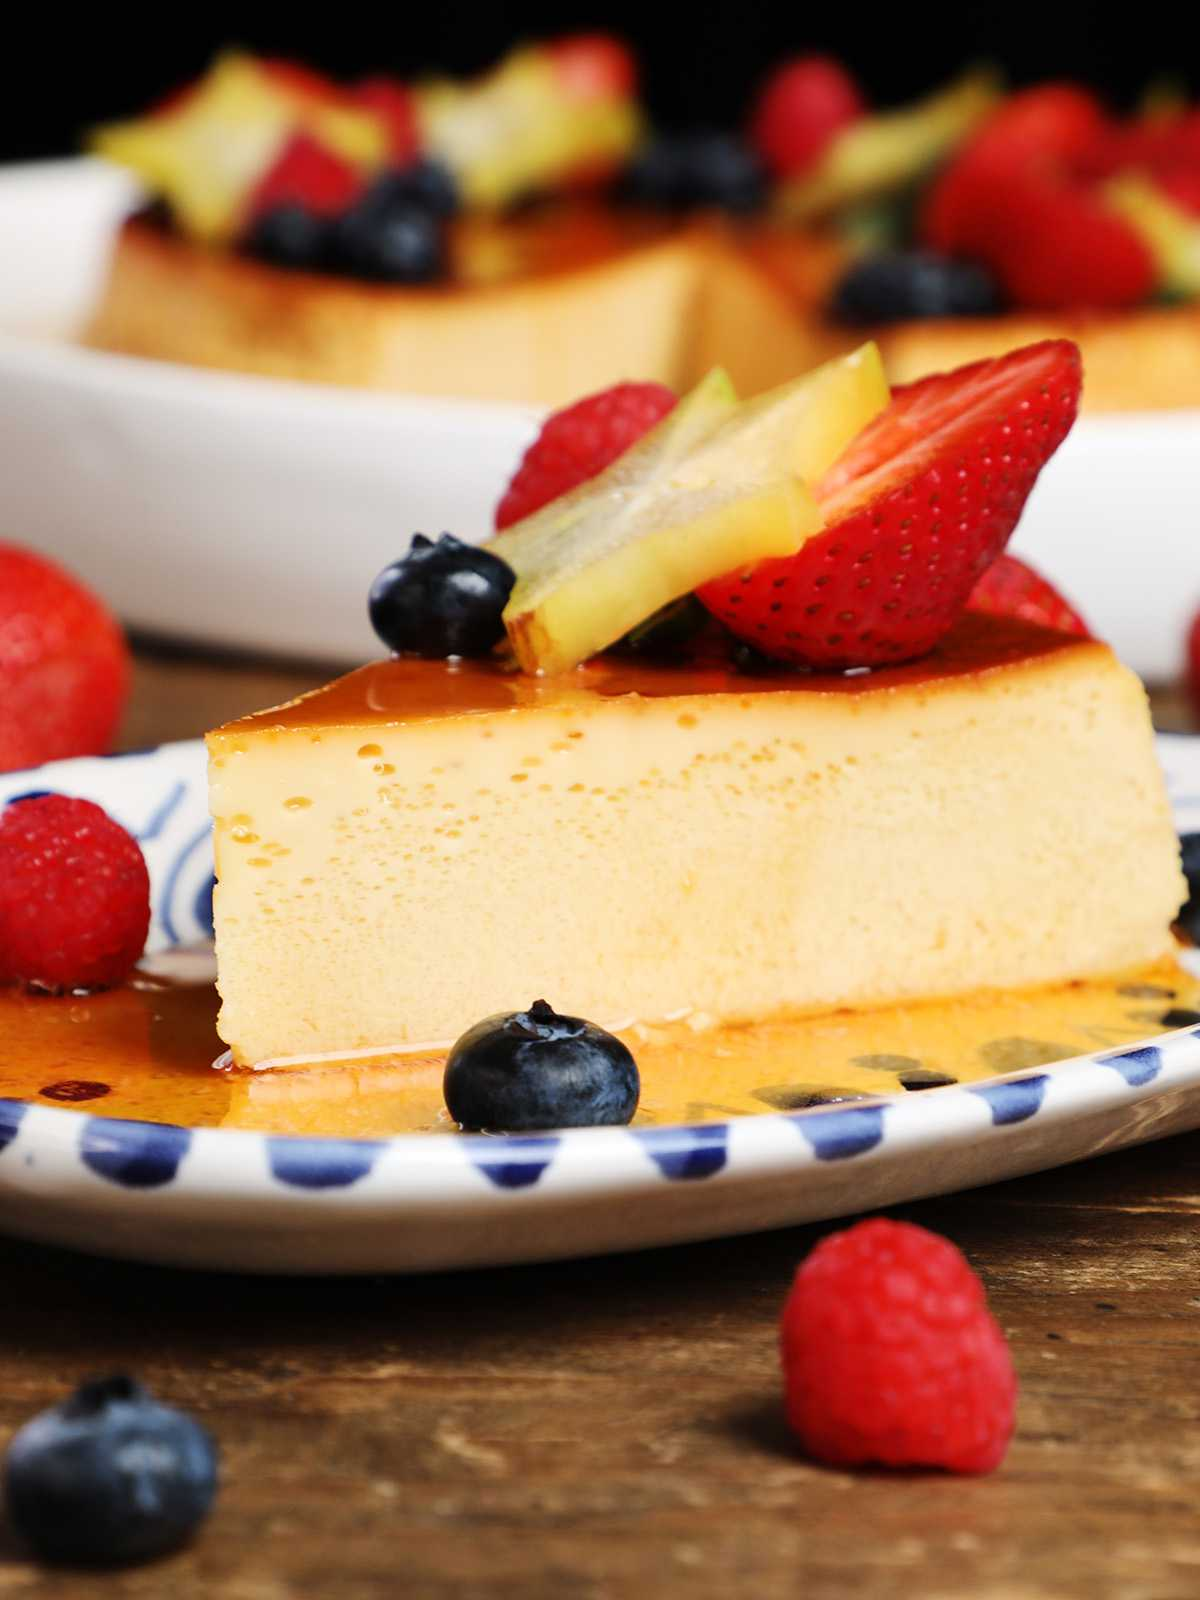 Slice of Flan Topped with Fruit